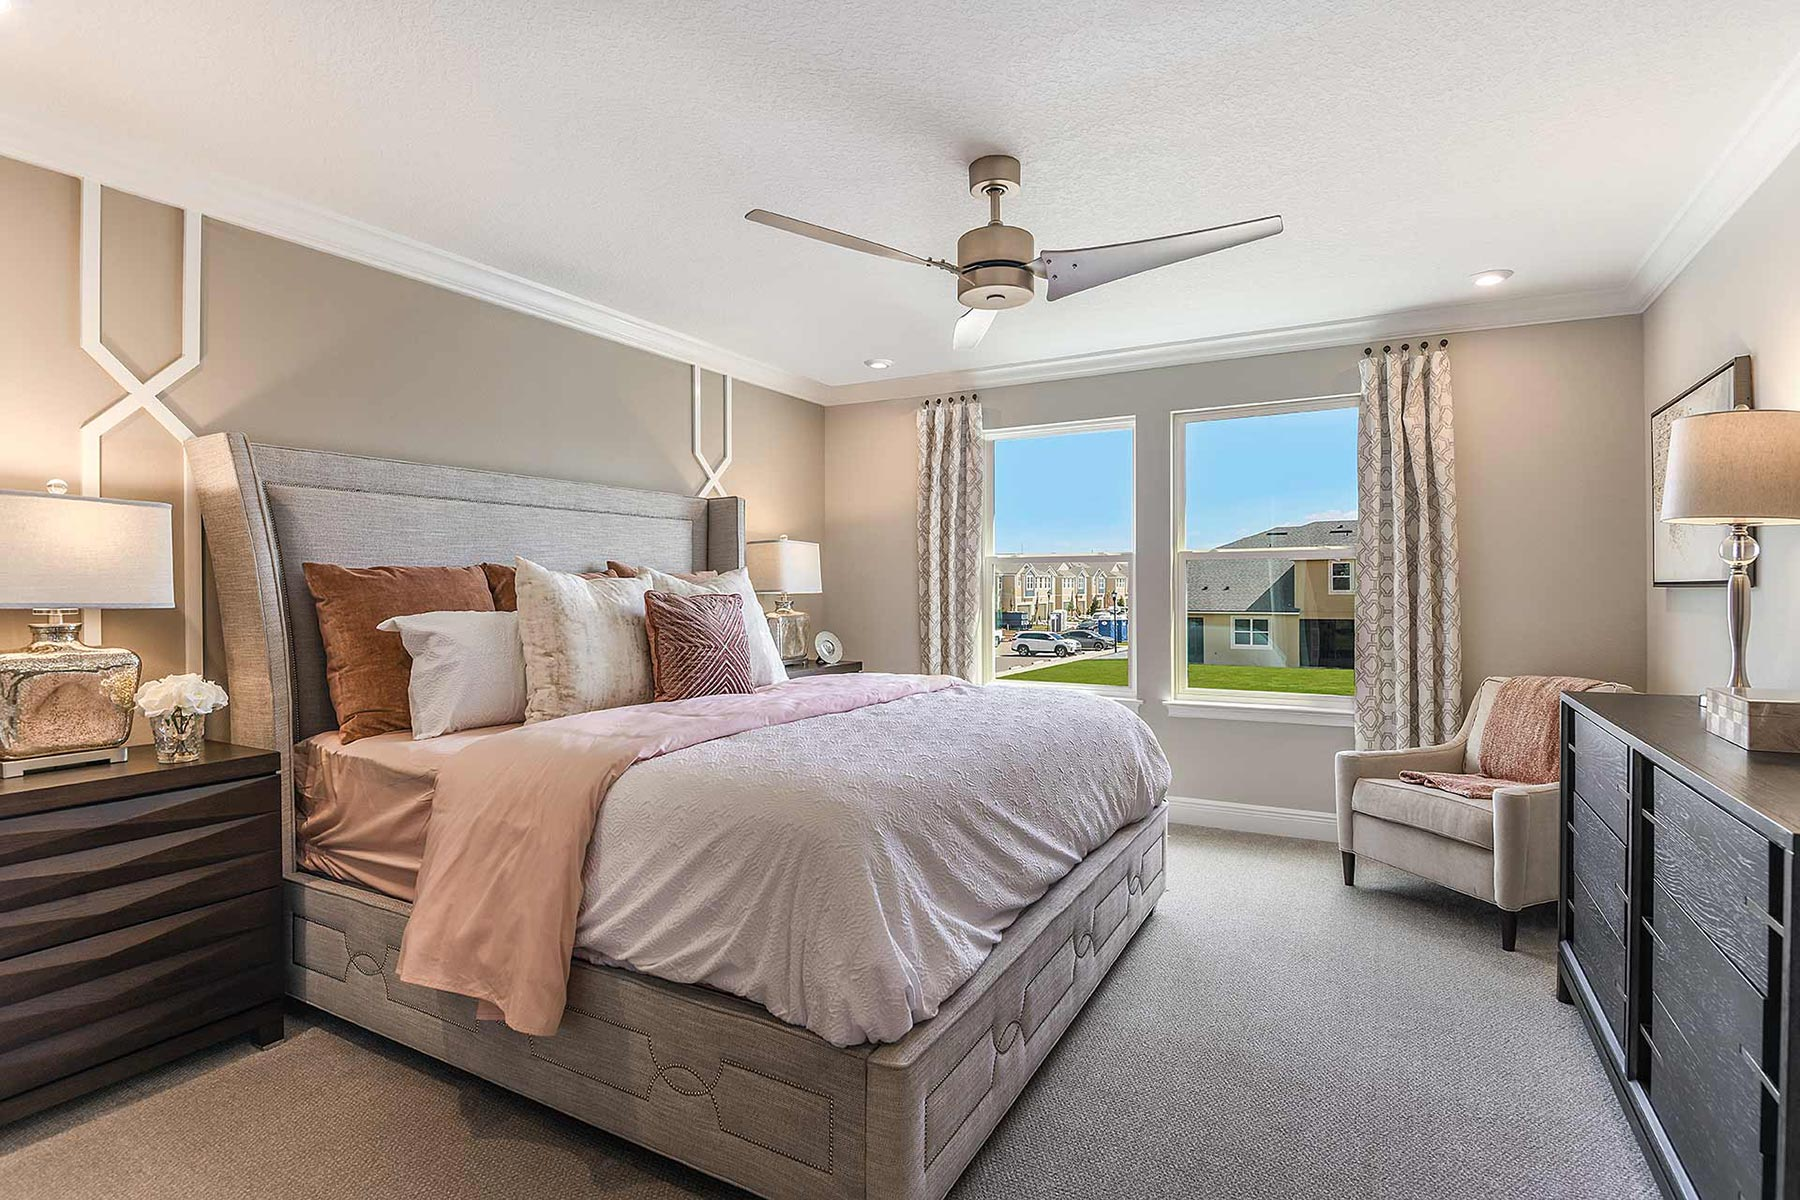 Avea Pointe Bedroom in Lutz Florida by Mattamy Homes